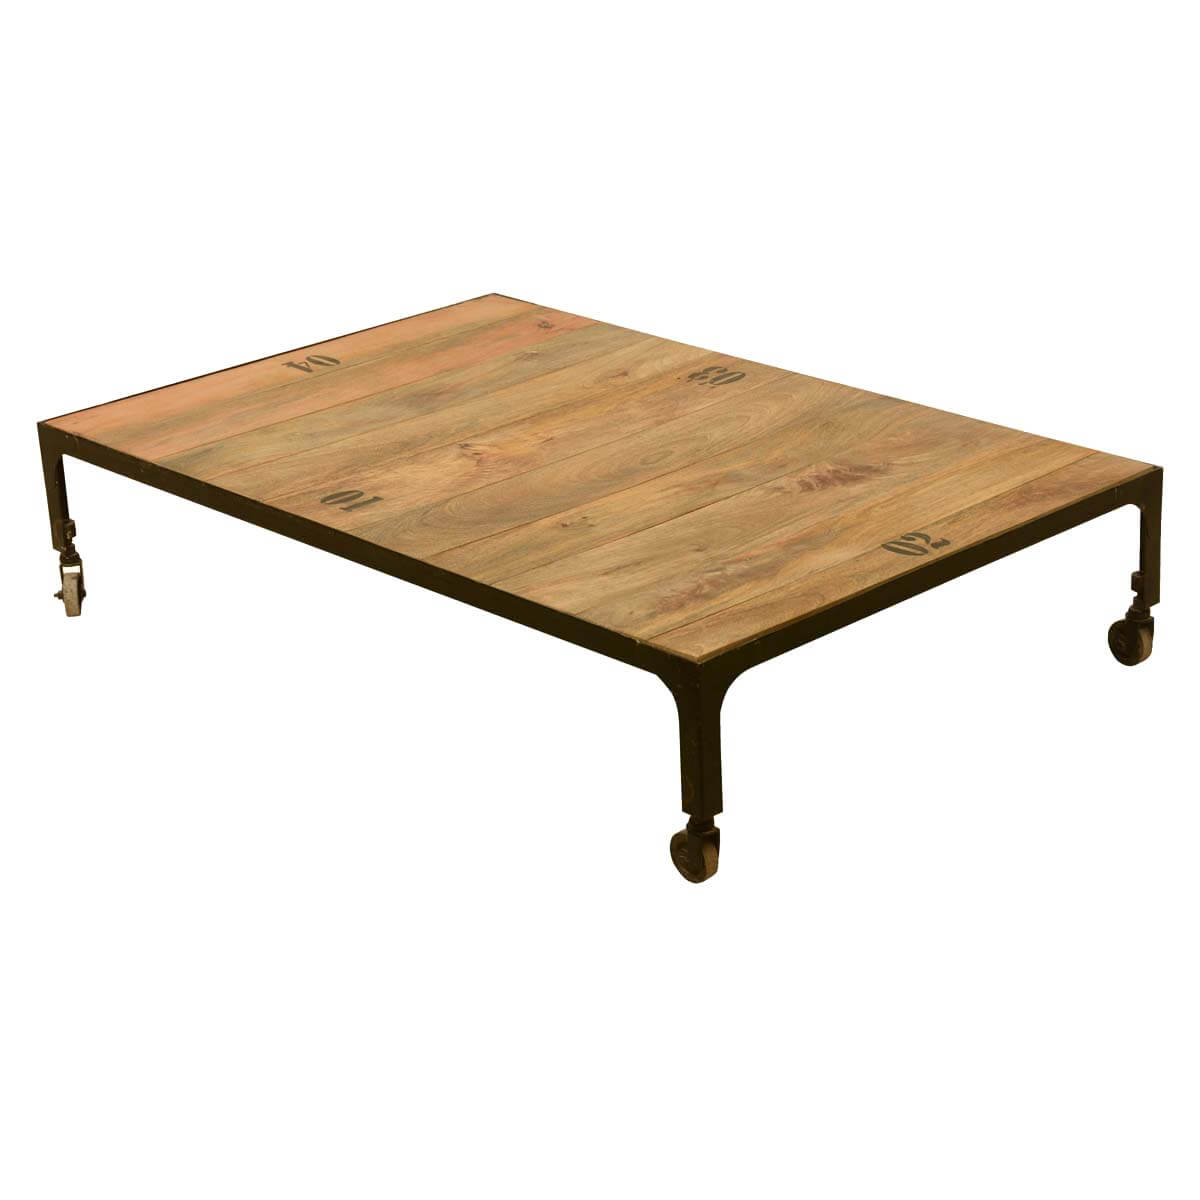 Industrial fusion solid wood iron rustic rolling cart coffee table Rustic wood and metal coffee table